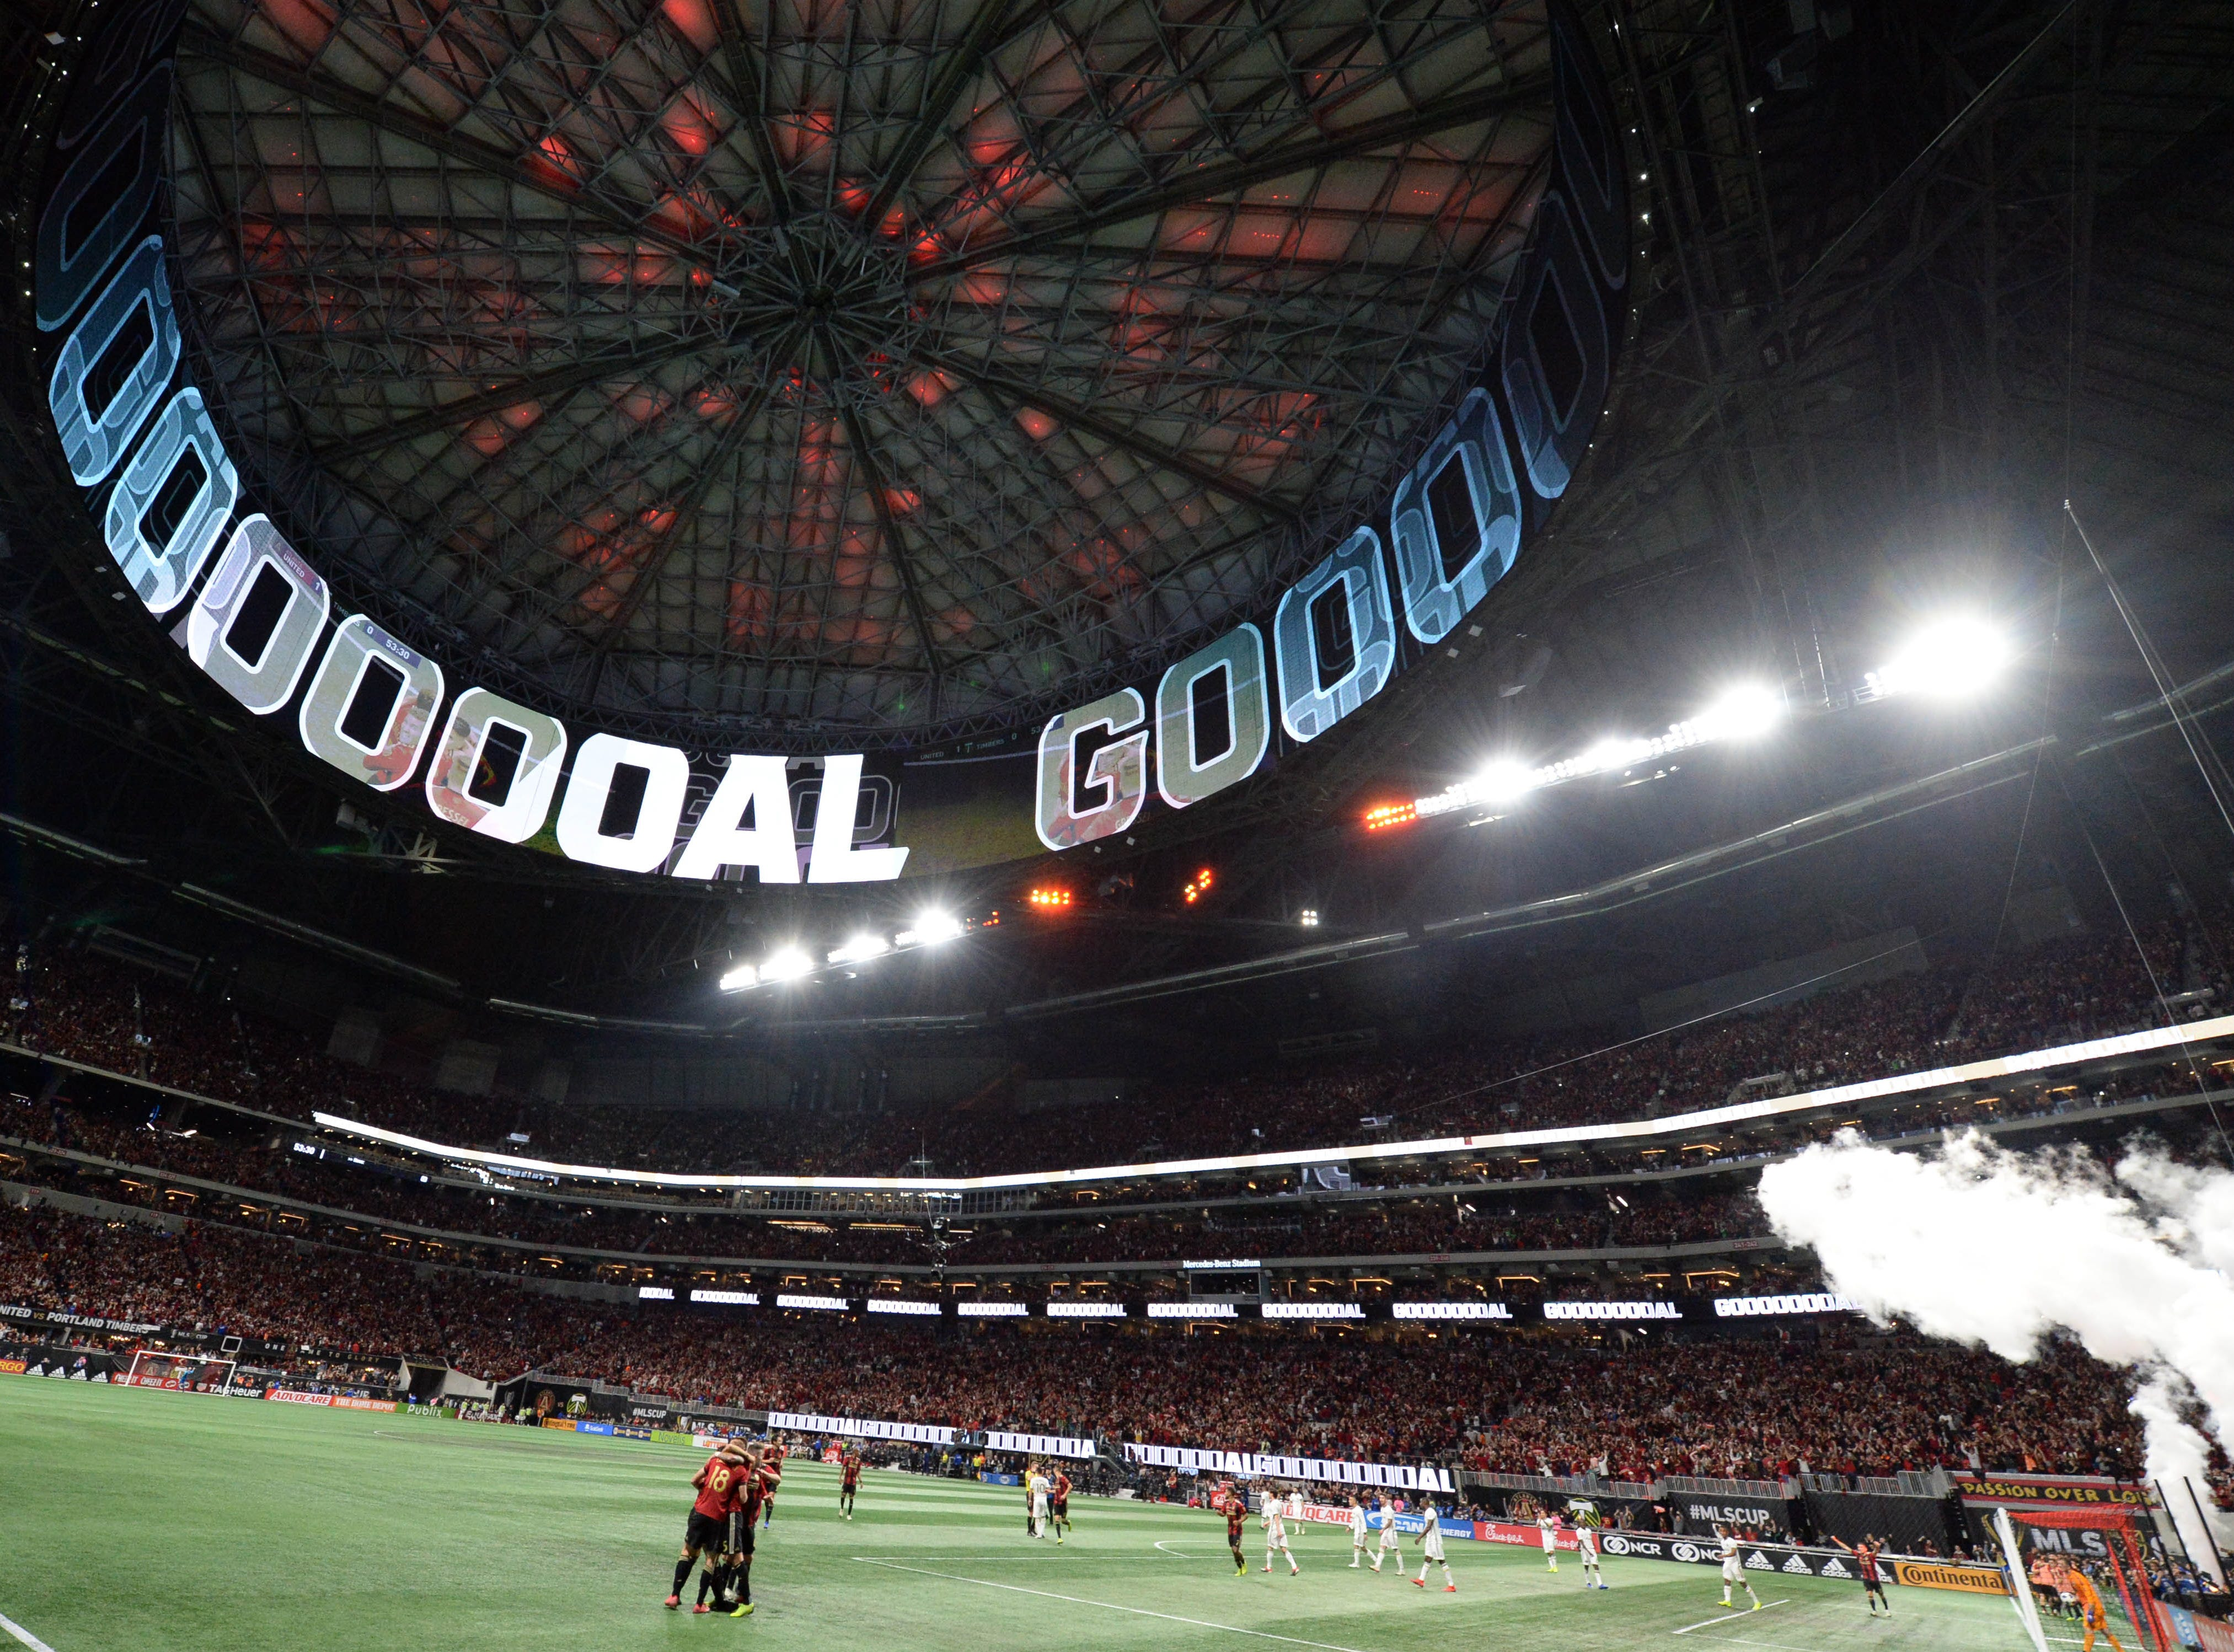 The roof of Mercedes-Benz Stadium celebrates Atlanta United's second goal in the 2018 MLS Cup.